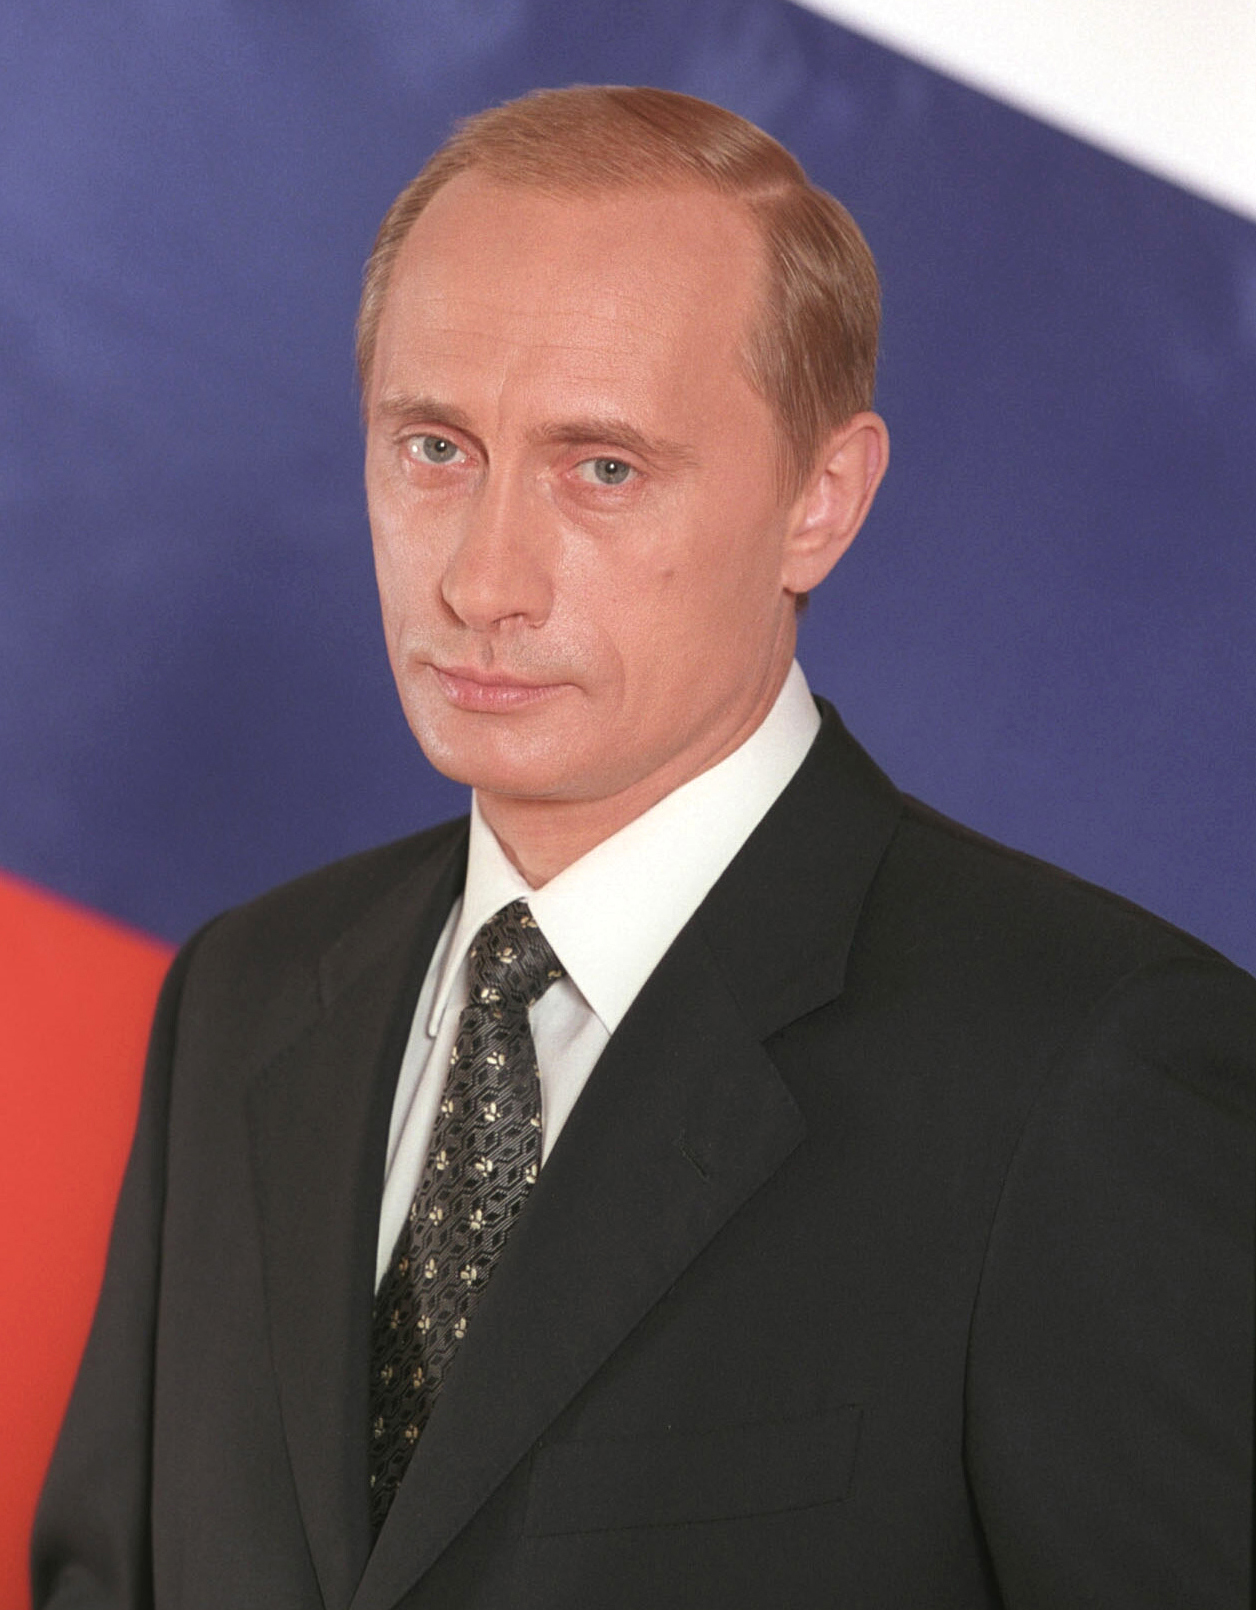 Vladimir_Putin_official_portrait